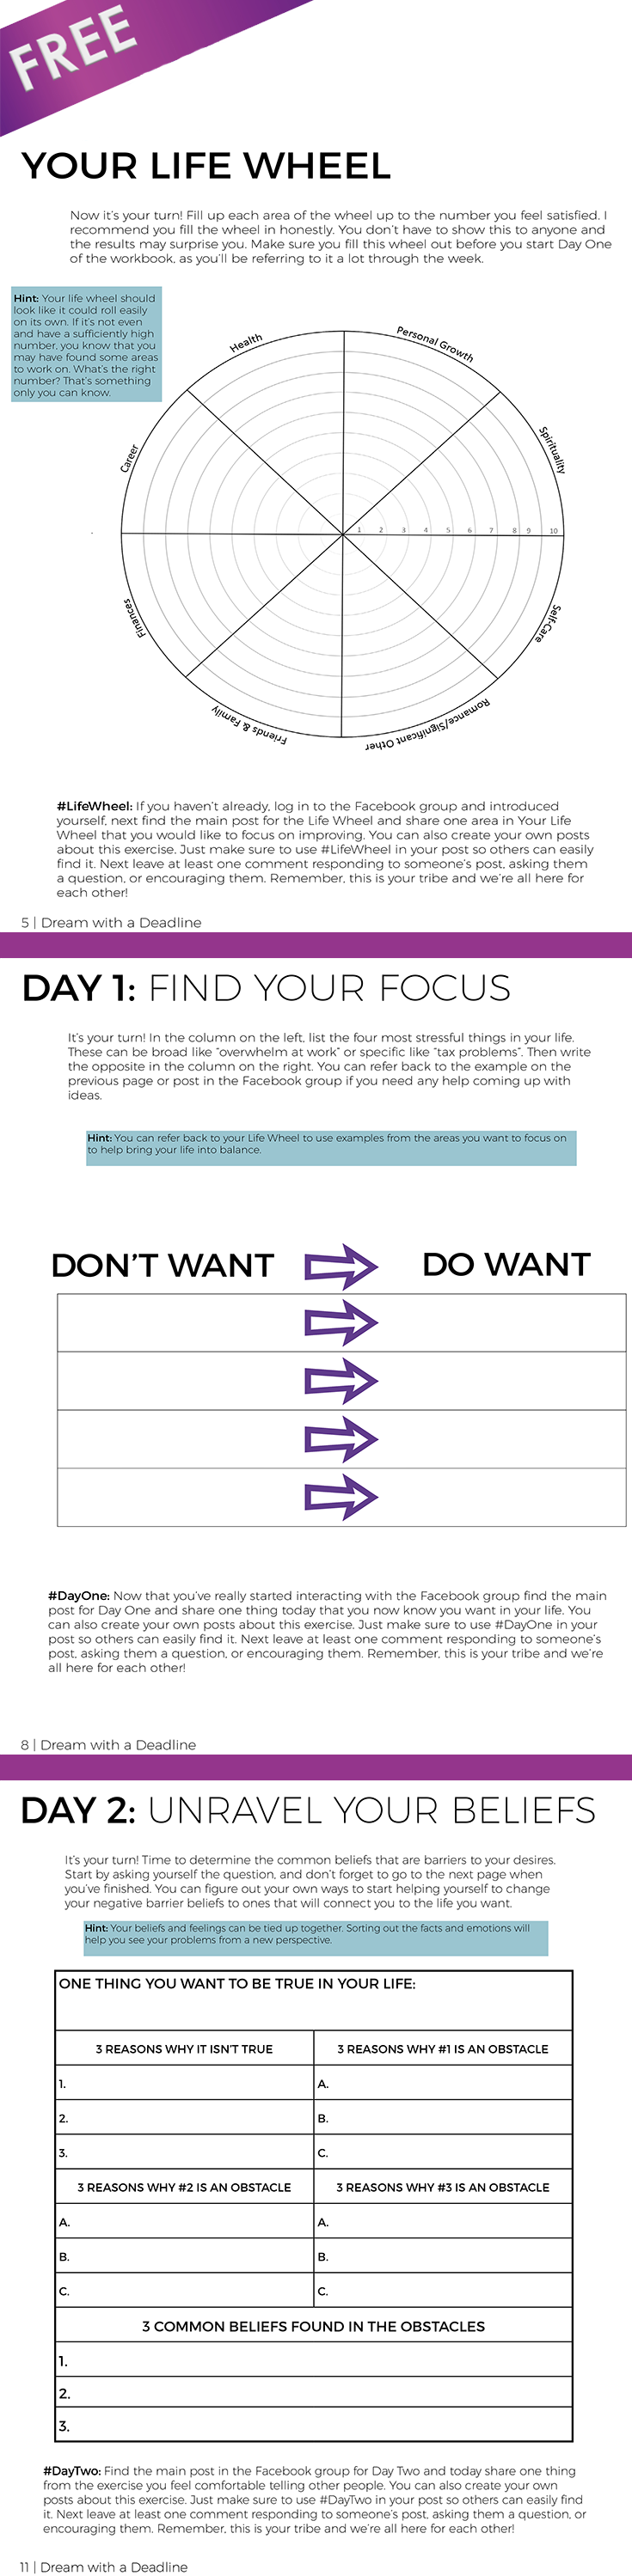 FREE Personal Development Goal Setting Workbook 26 pages